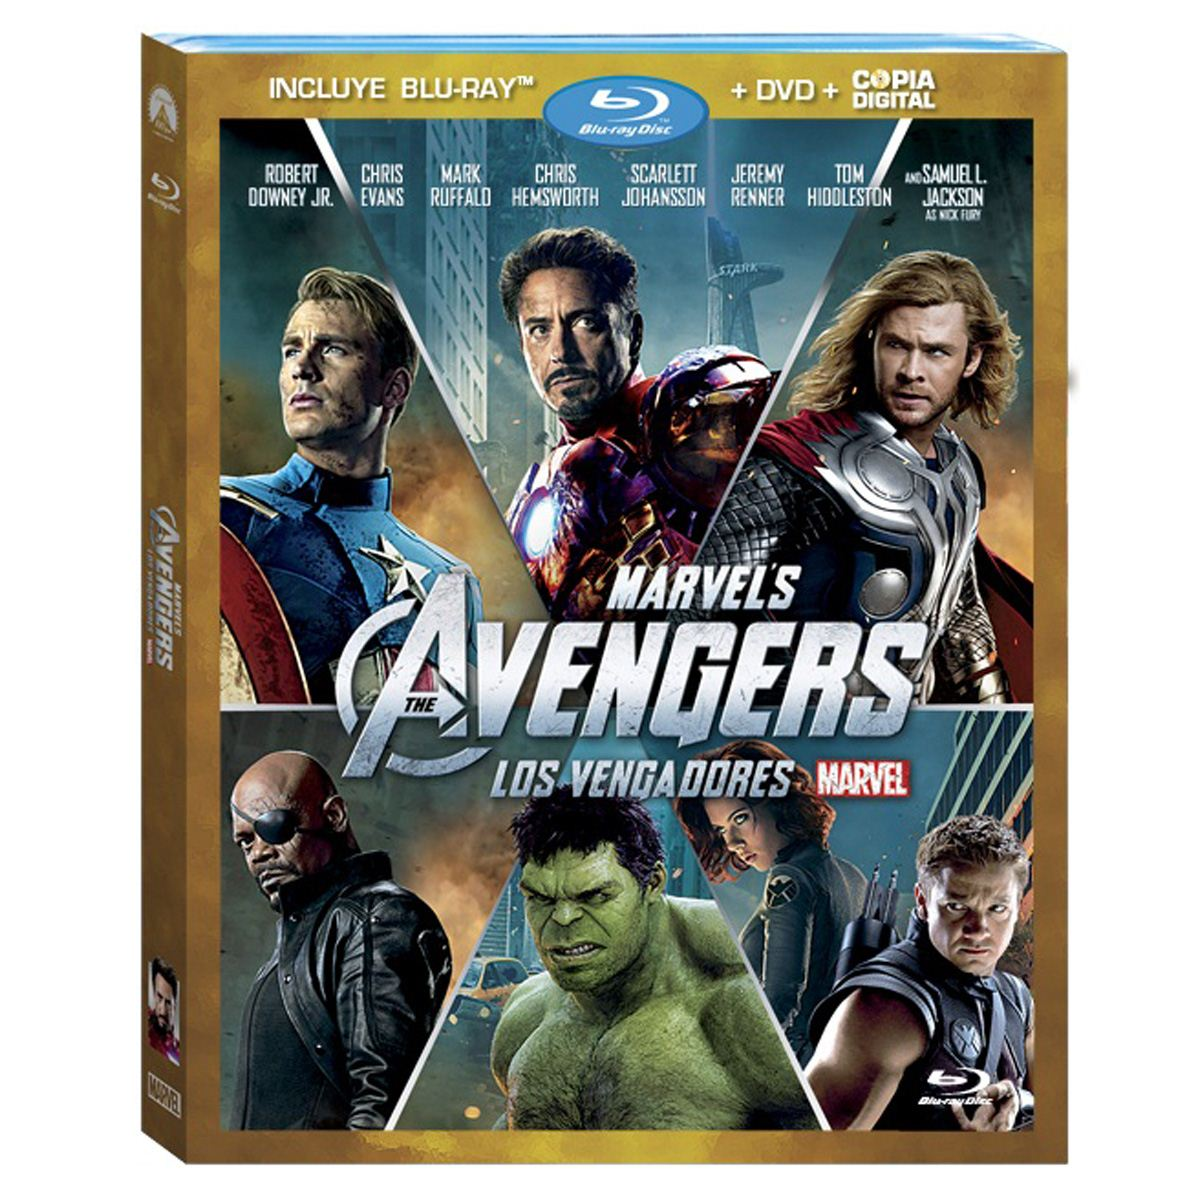 Br/dvd/copia digital los vengadores  - Sanborns